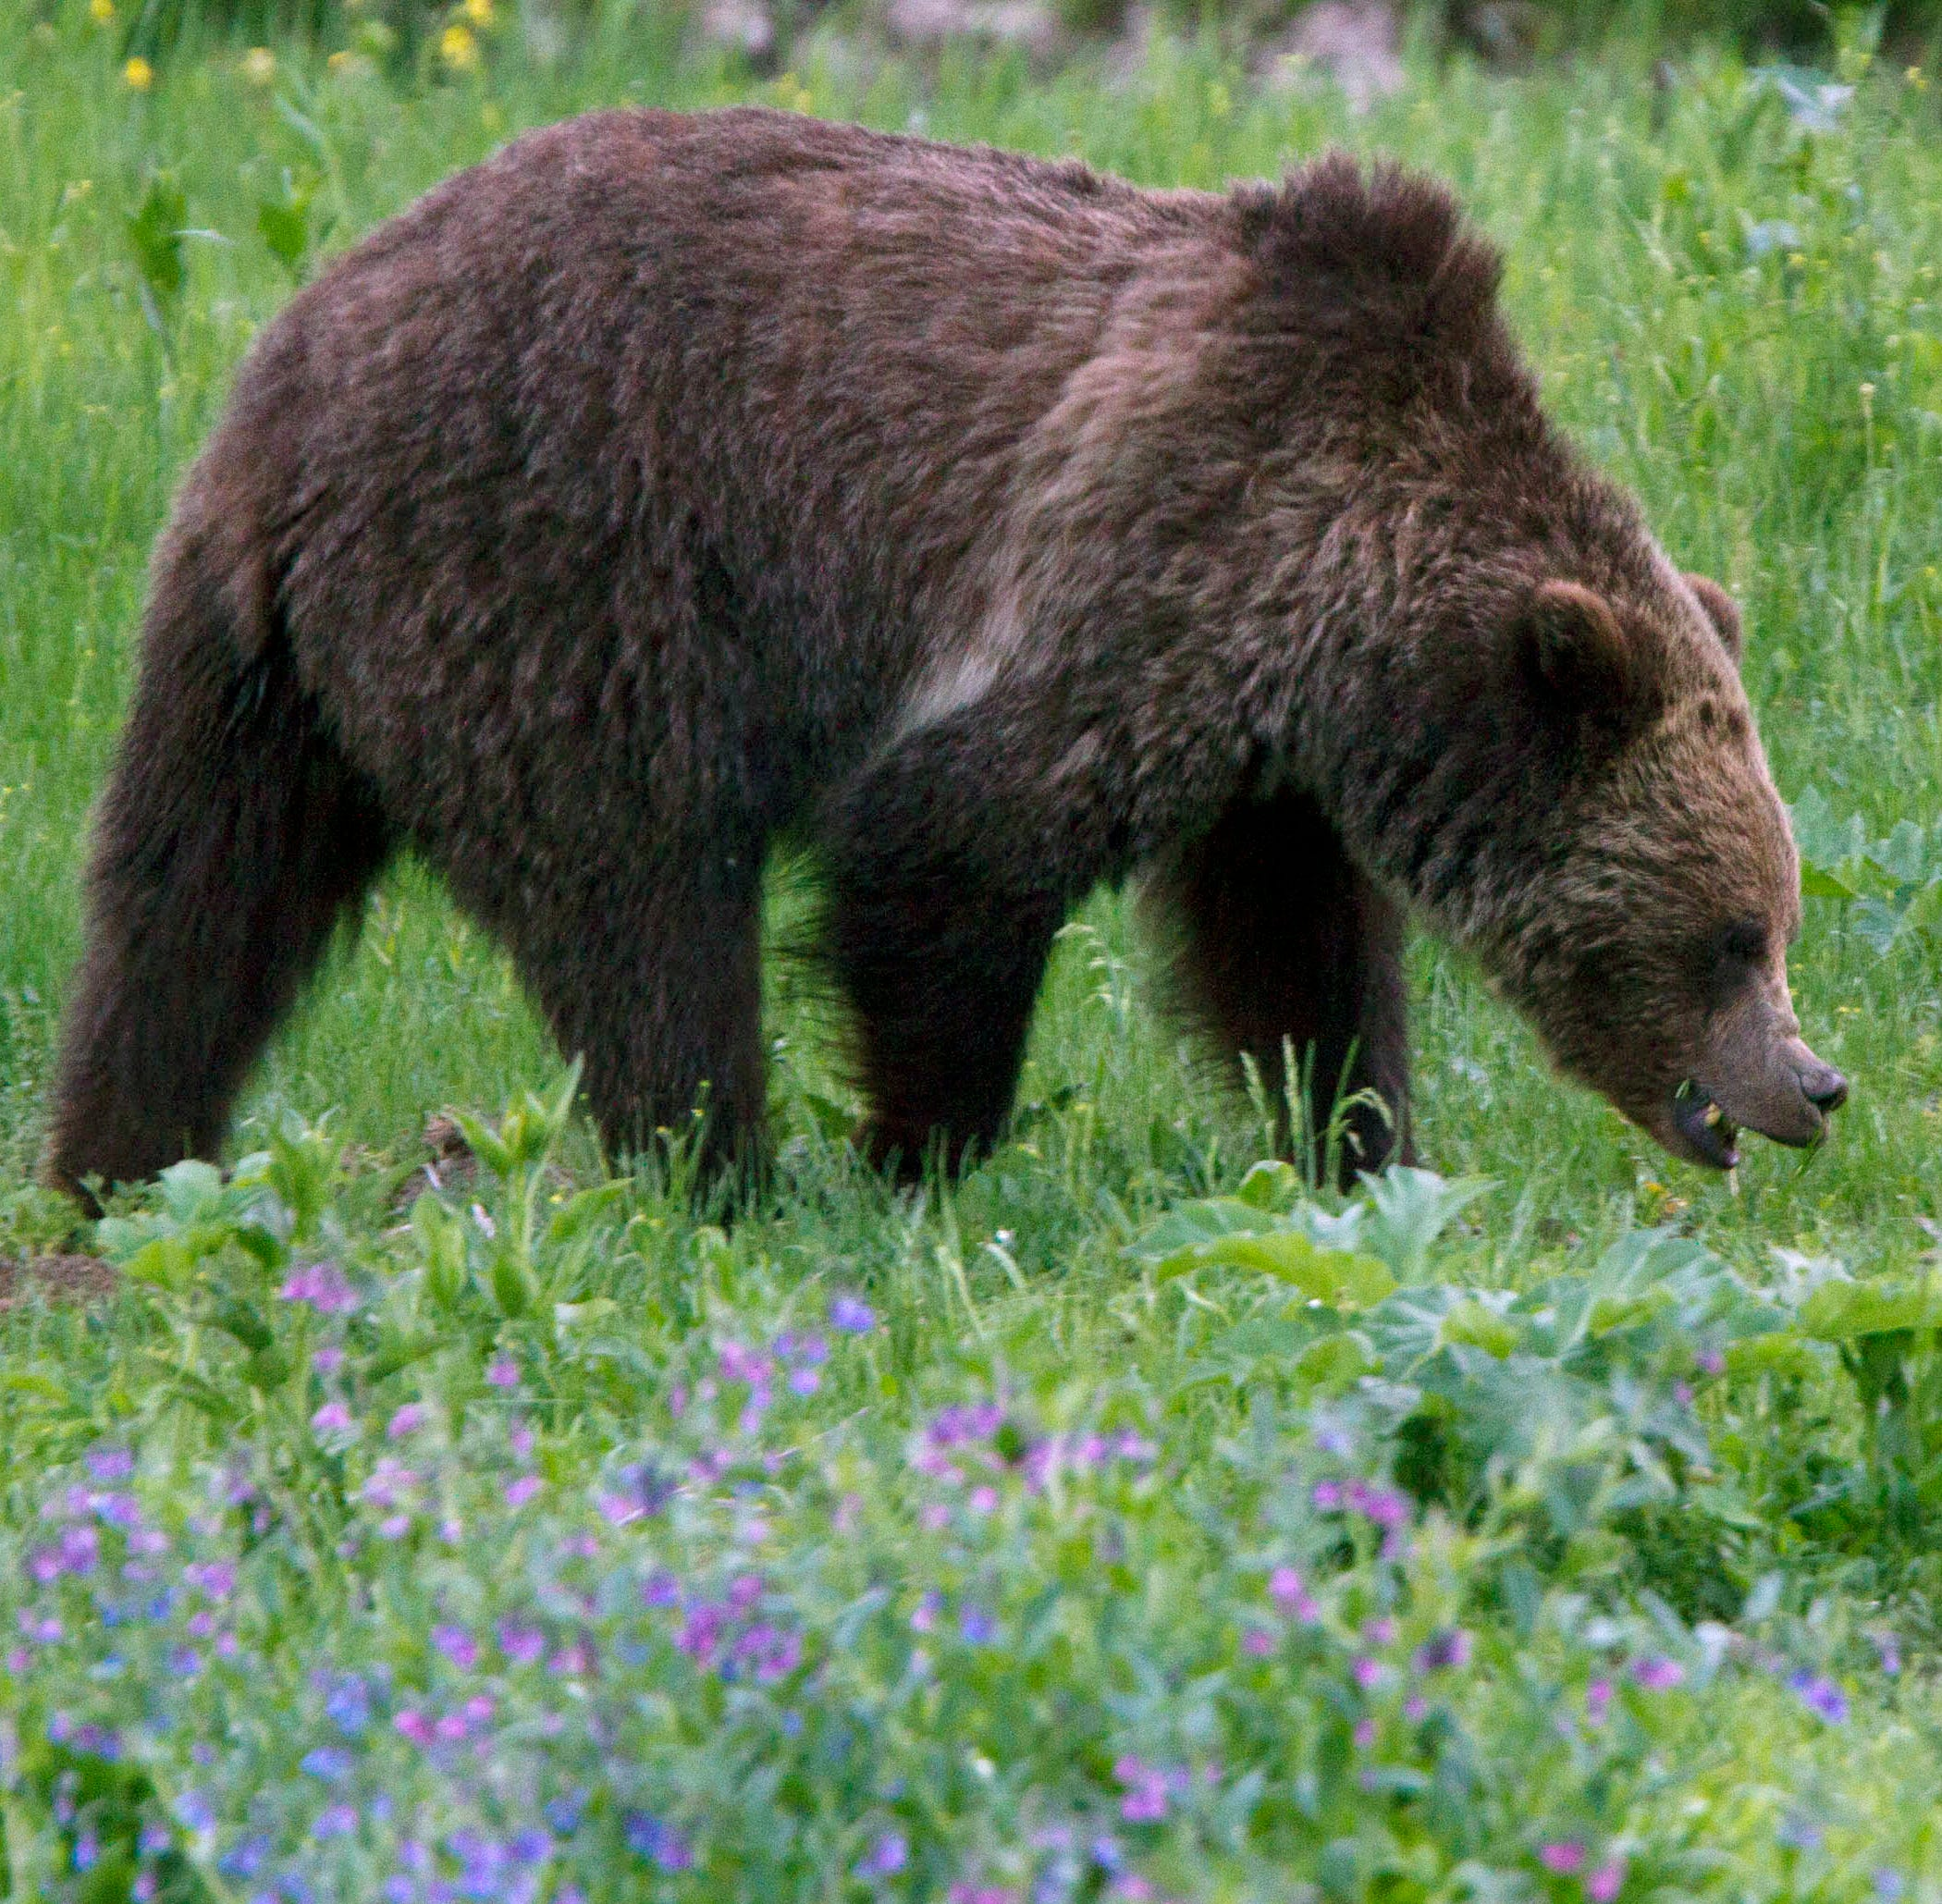 Montana judge restores protections for grizzly bears, blocking hunts